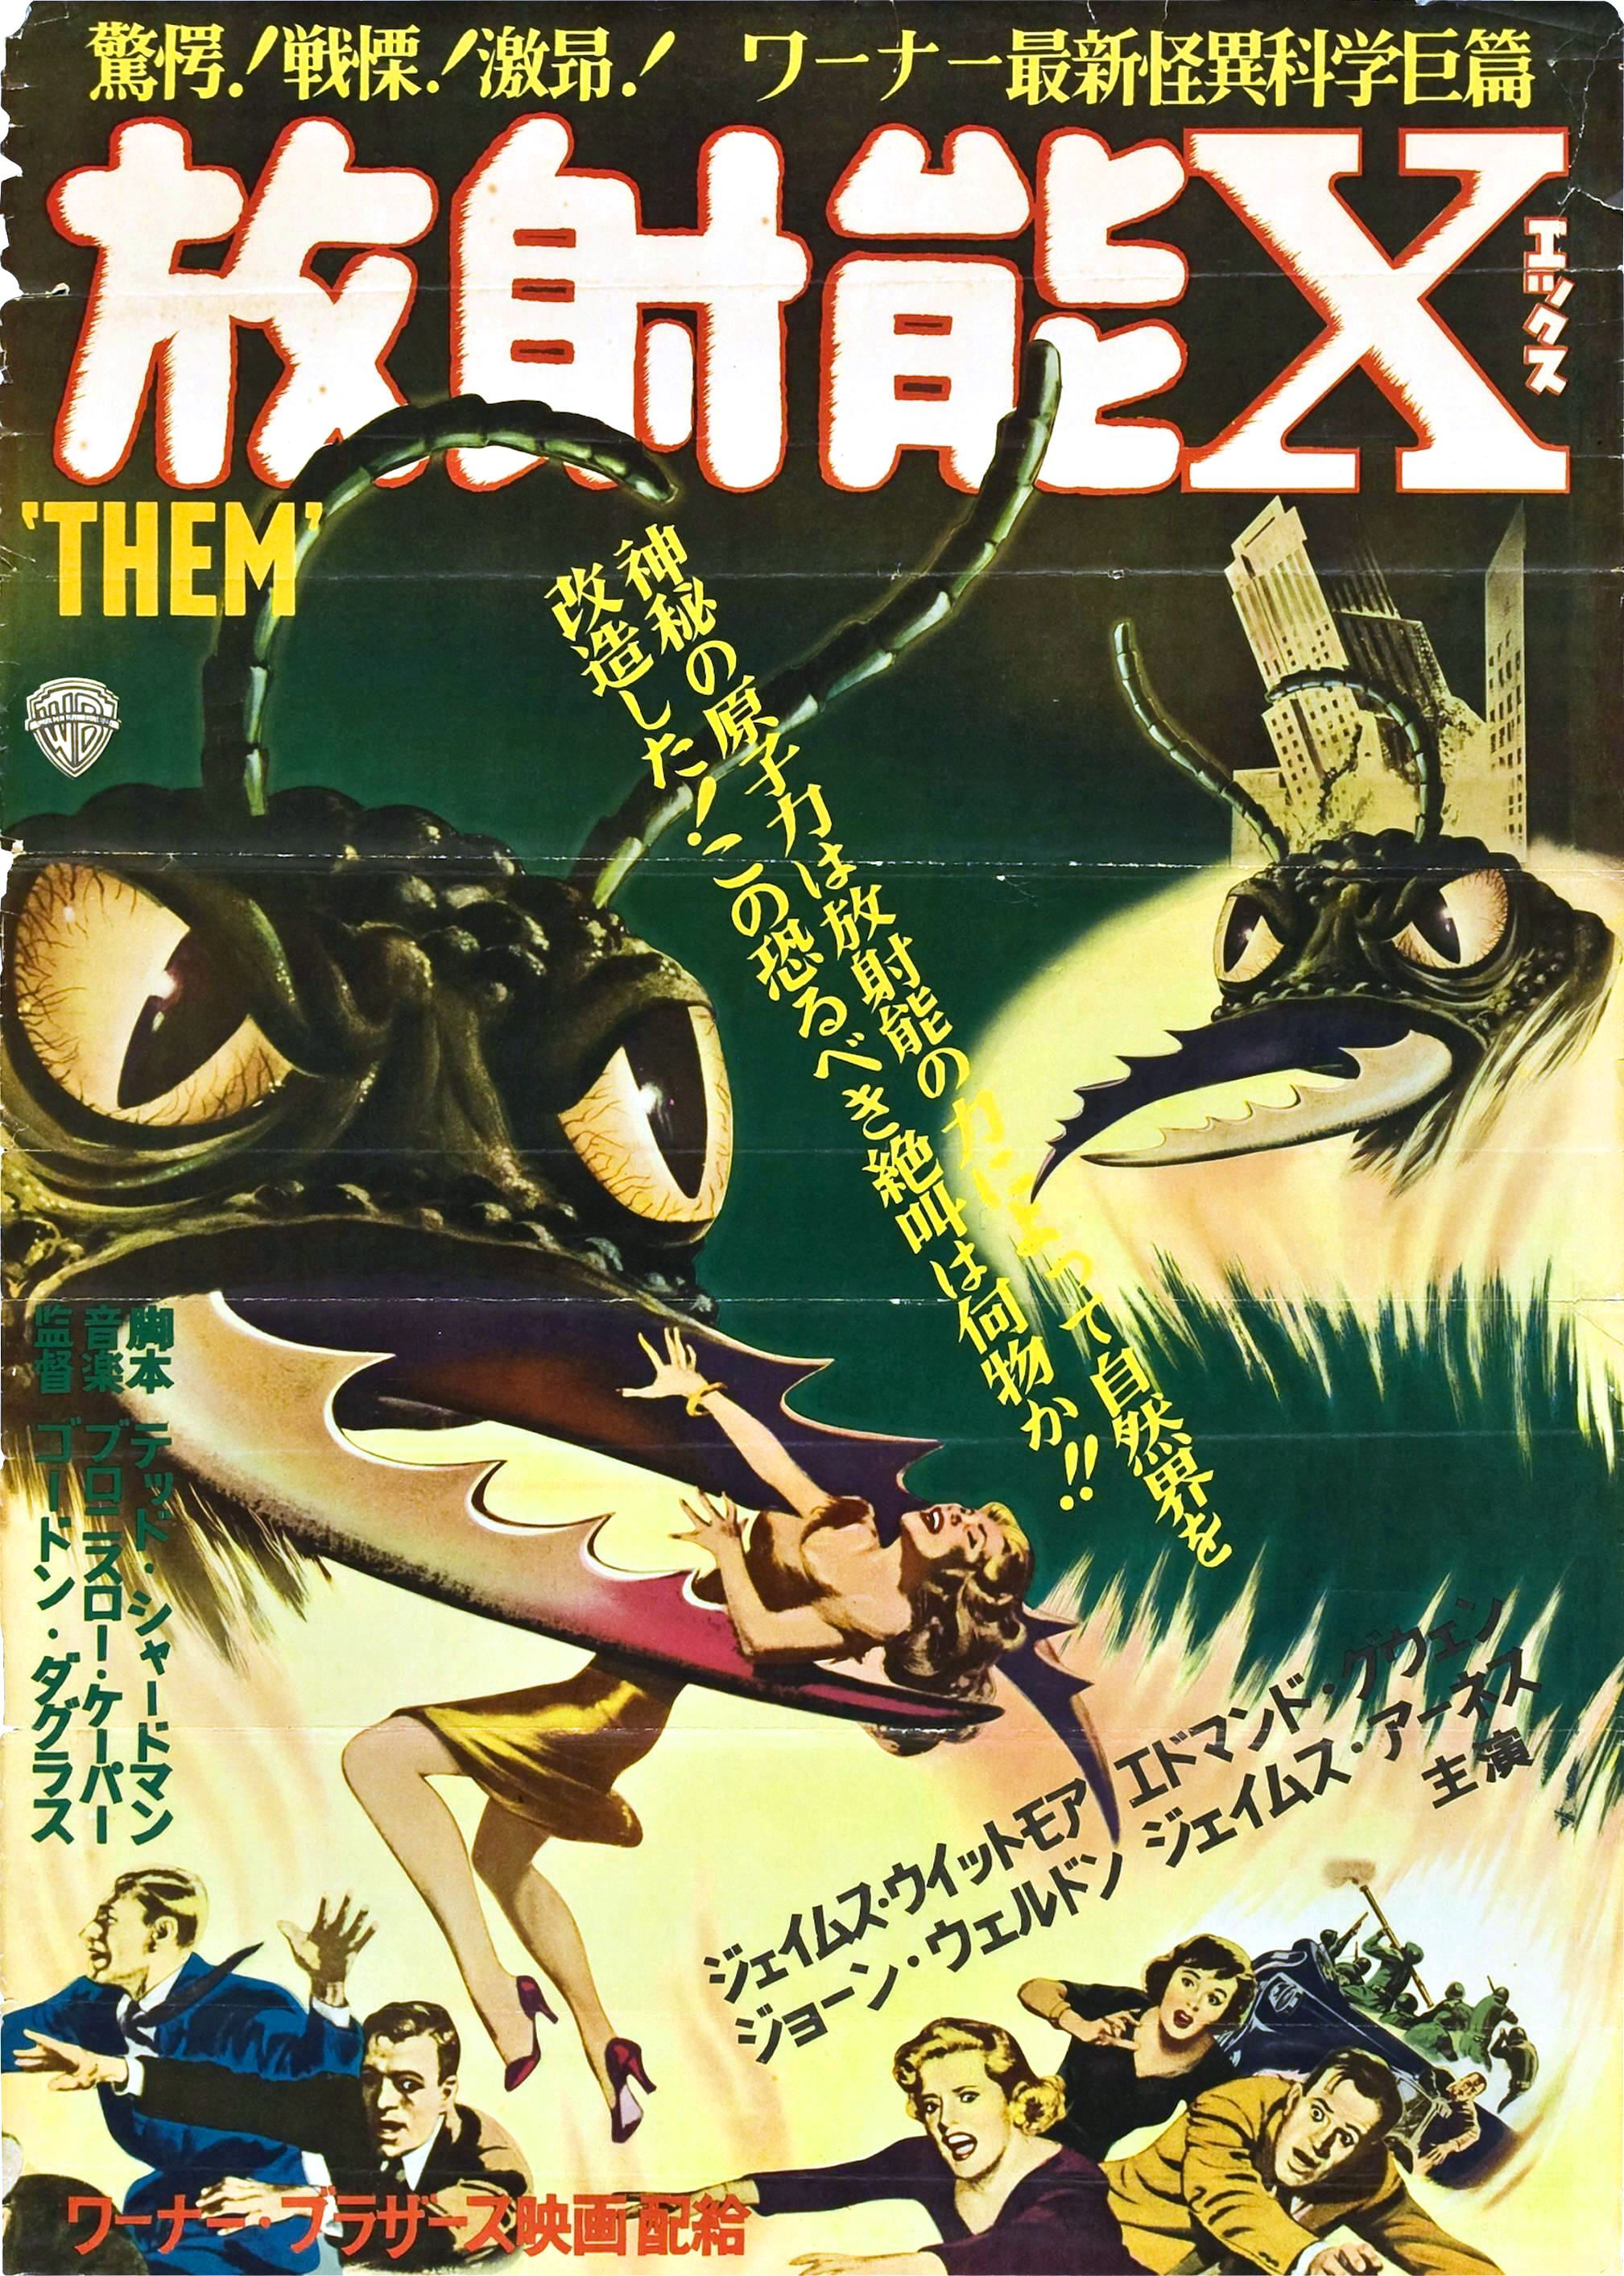 1950s horror movie posters httpwwwbingcomimages